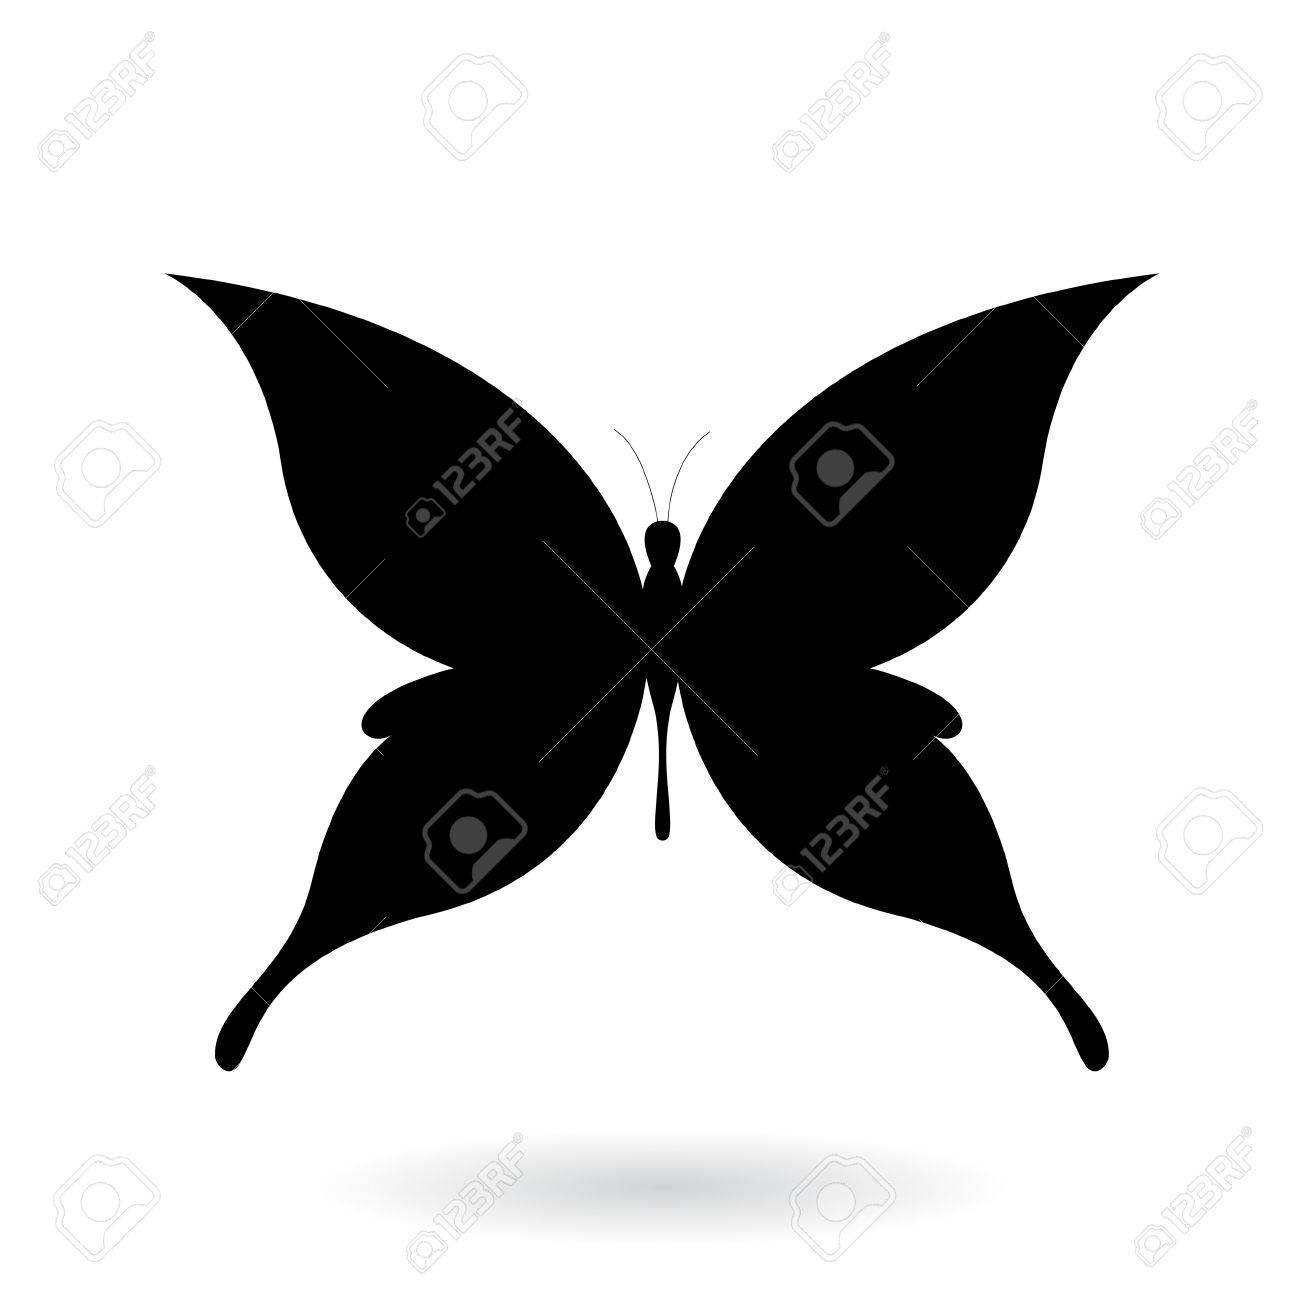 Vector Illustration of a Black Butterfly Silhouettey isolated on a white background - 67833446